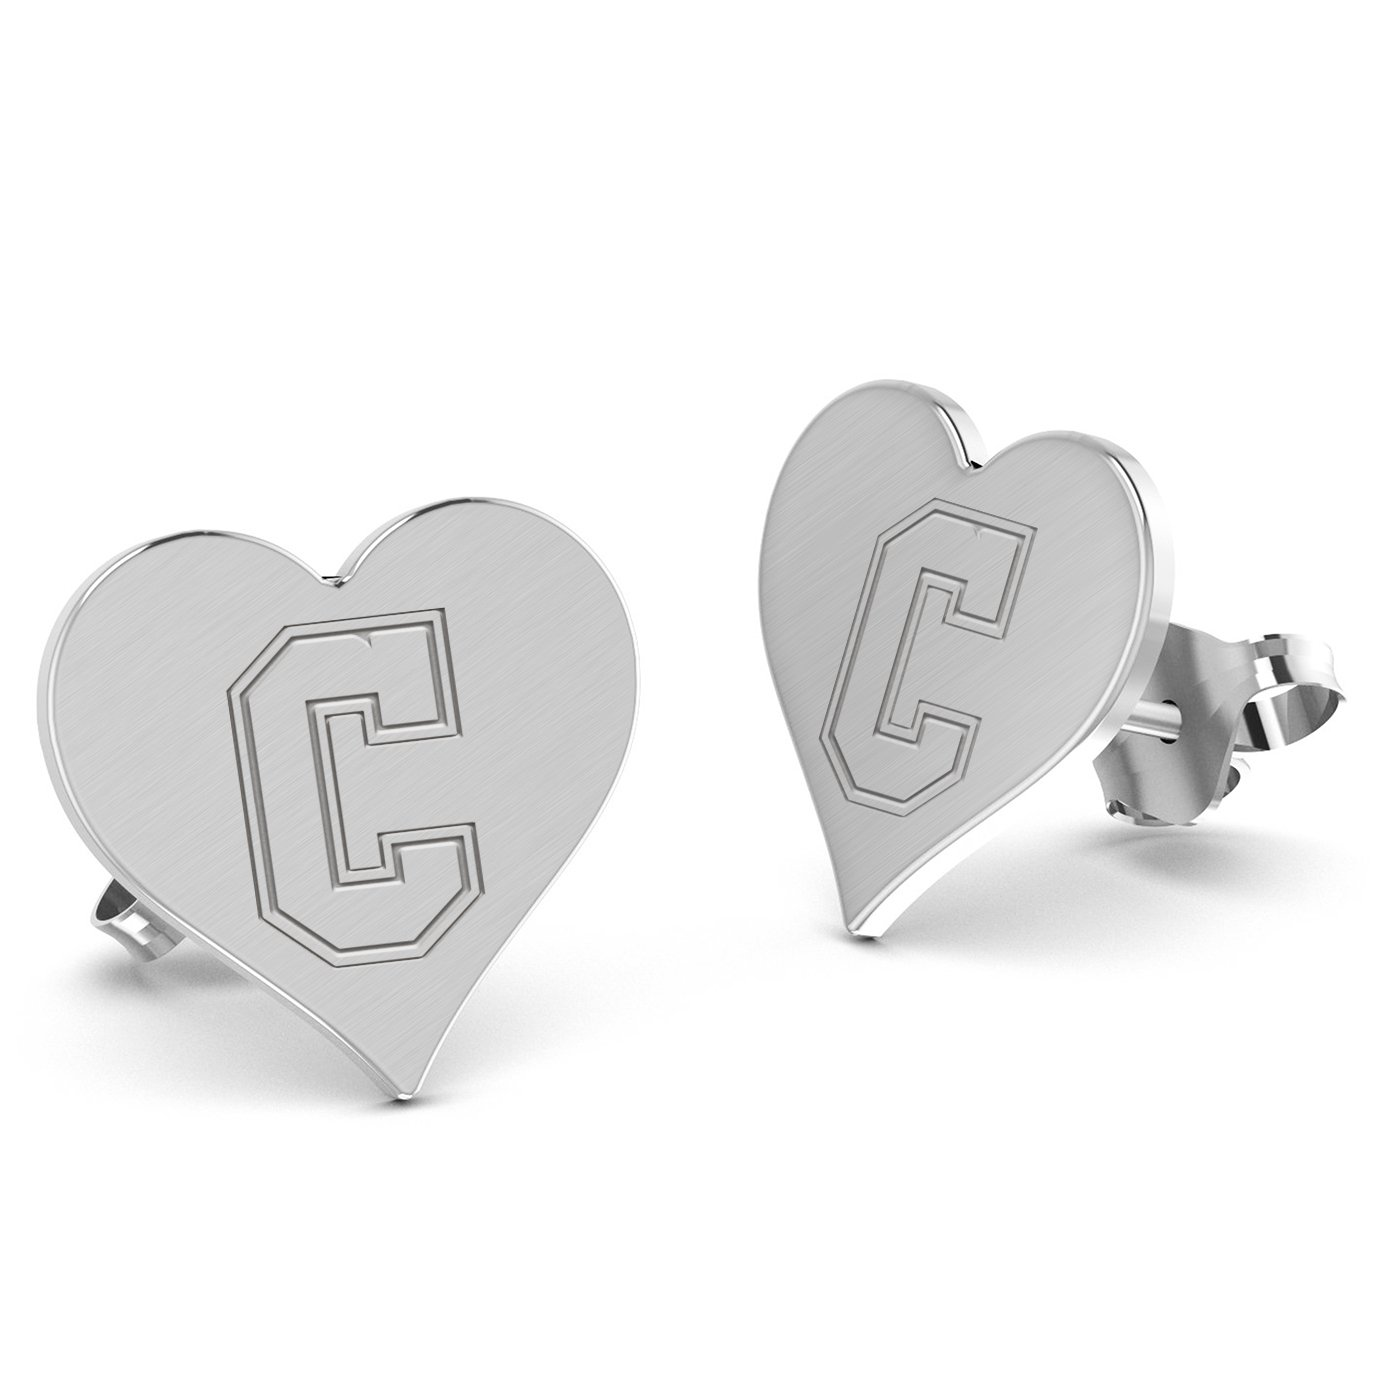 Charleston Cougars Heart Stud Earring See Image on Model for Size Reference